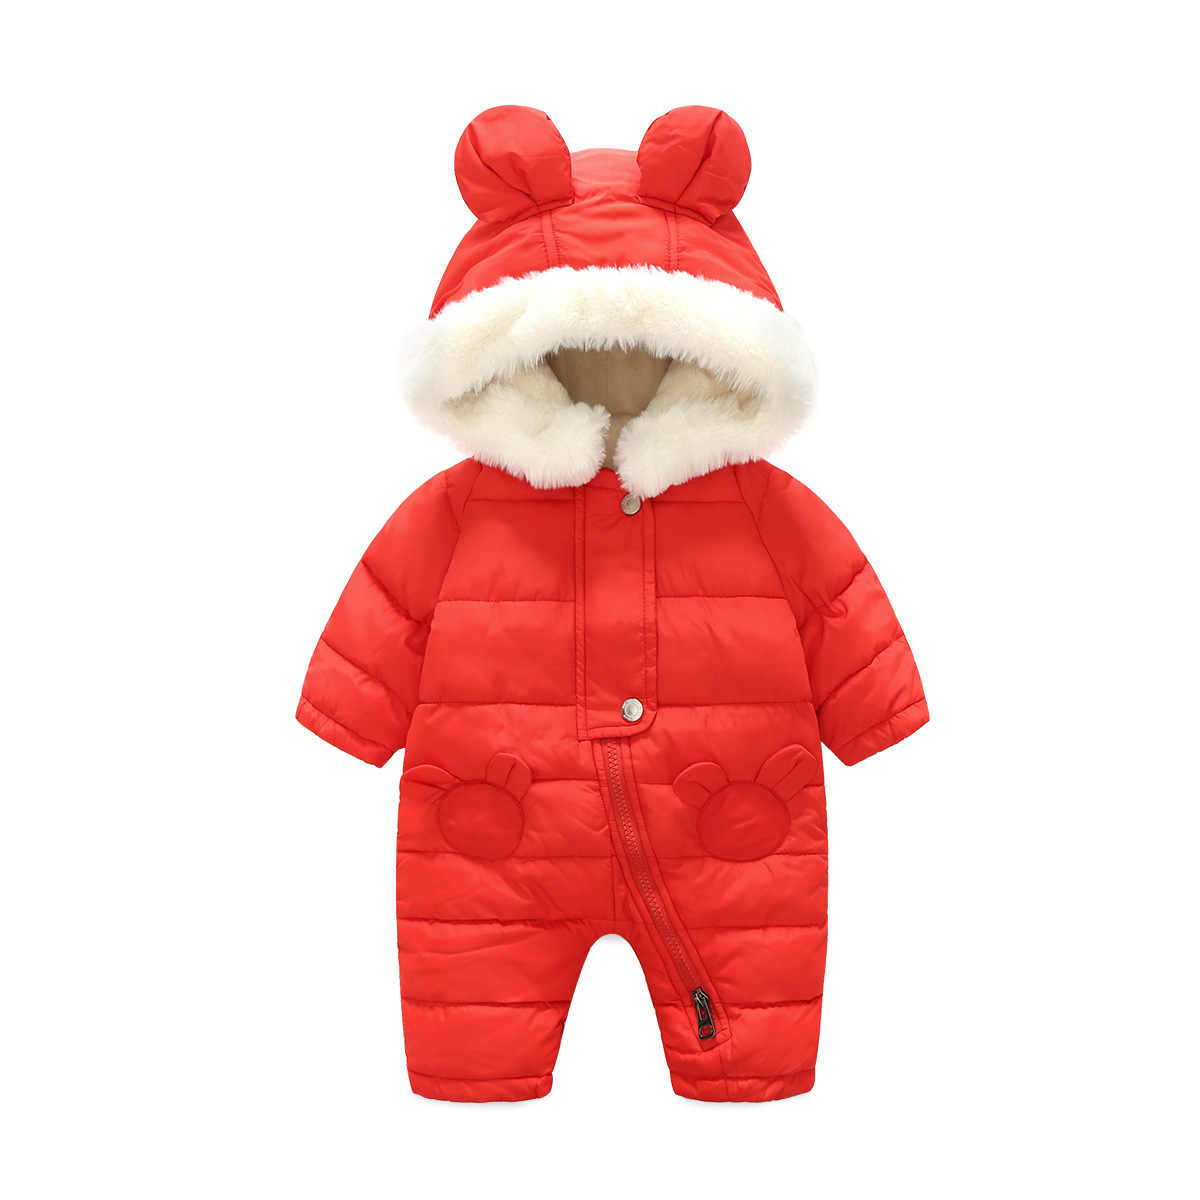 Winter Baby Jumpsuit Newborn Baby Girls Clothes Jumpsuit Warm Snowsuit For Boys Hooded Overalls For Children Unisex Boys Romper